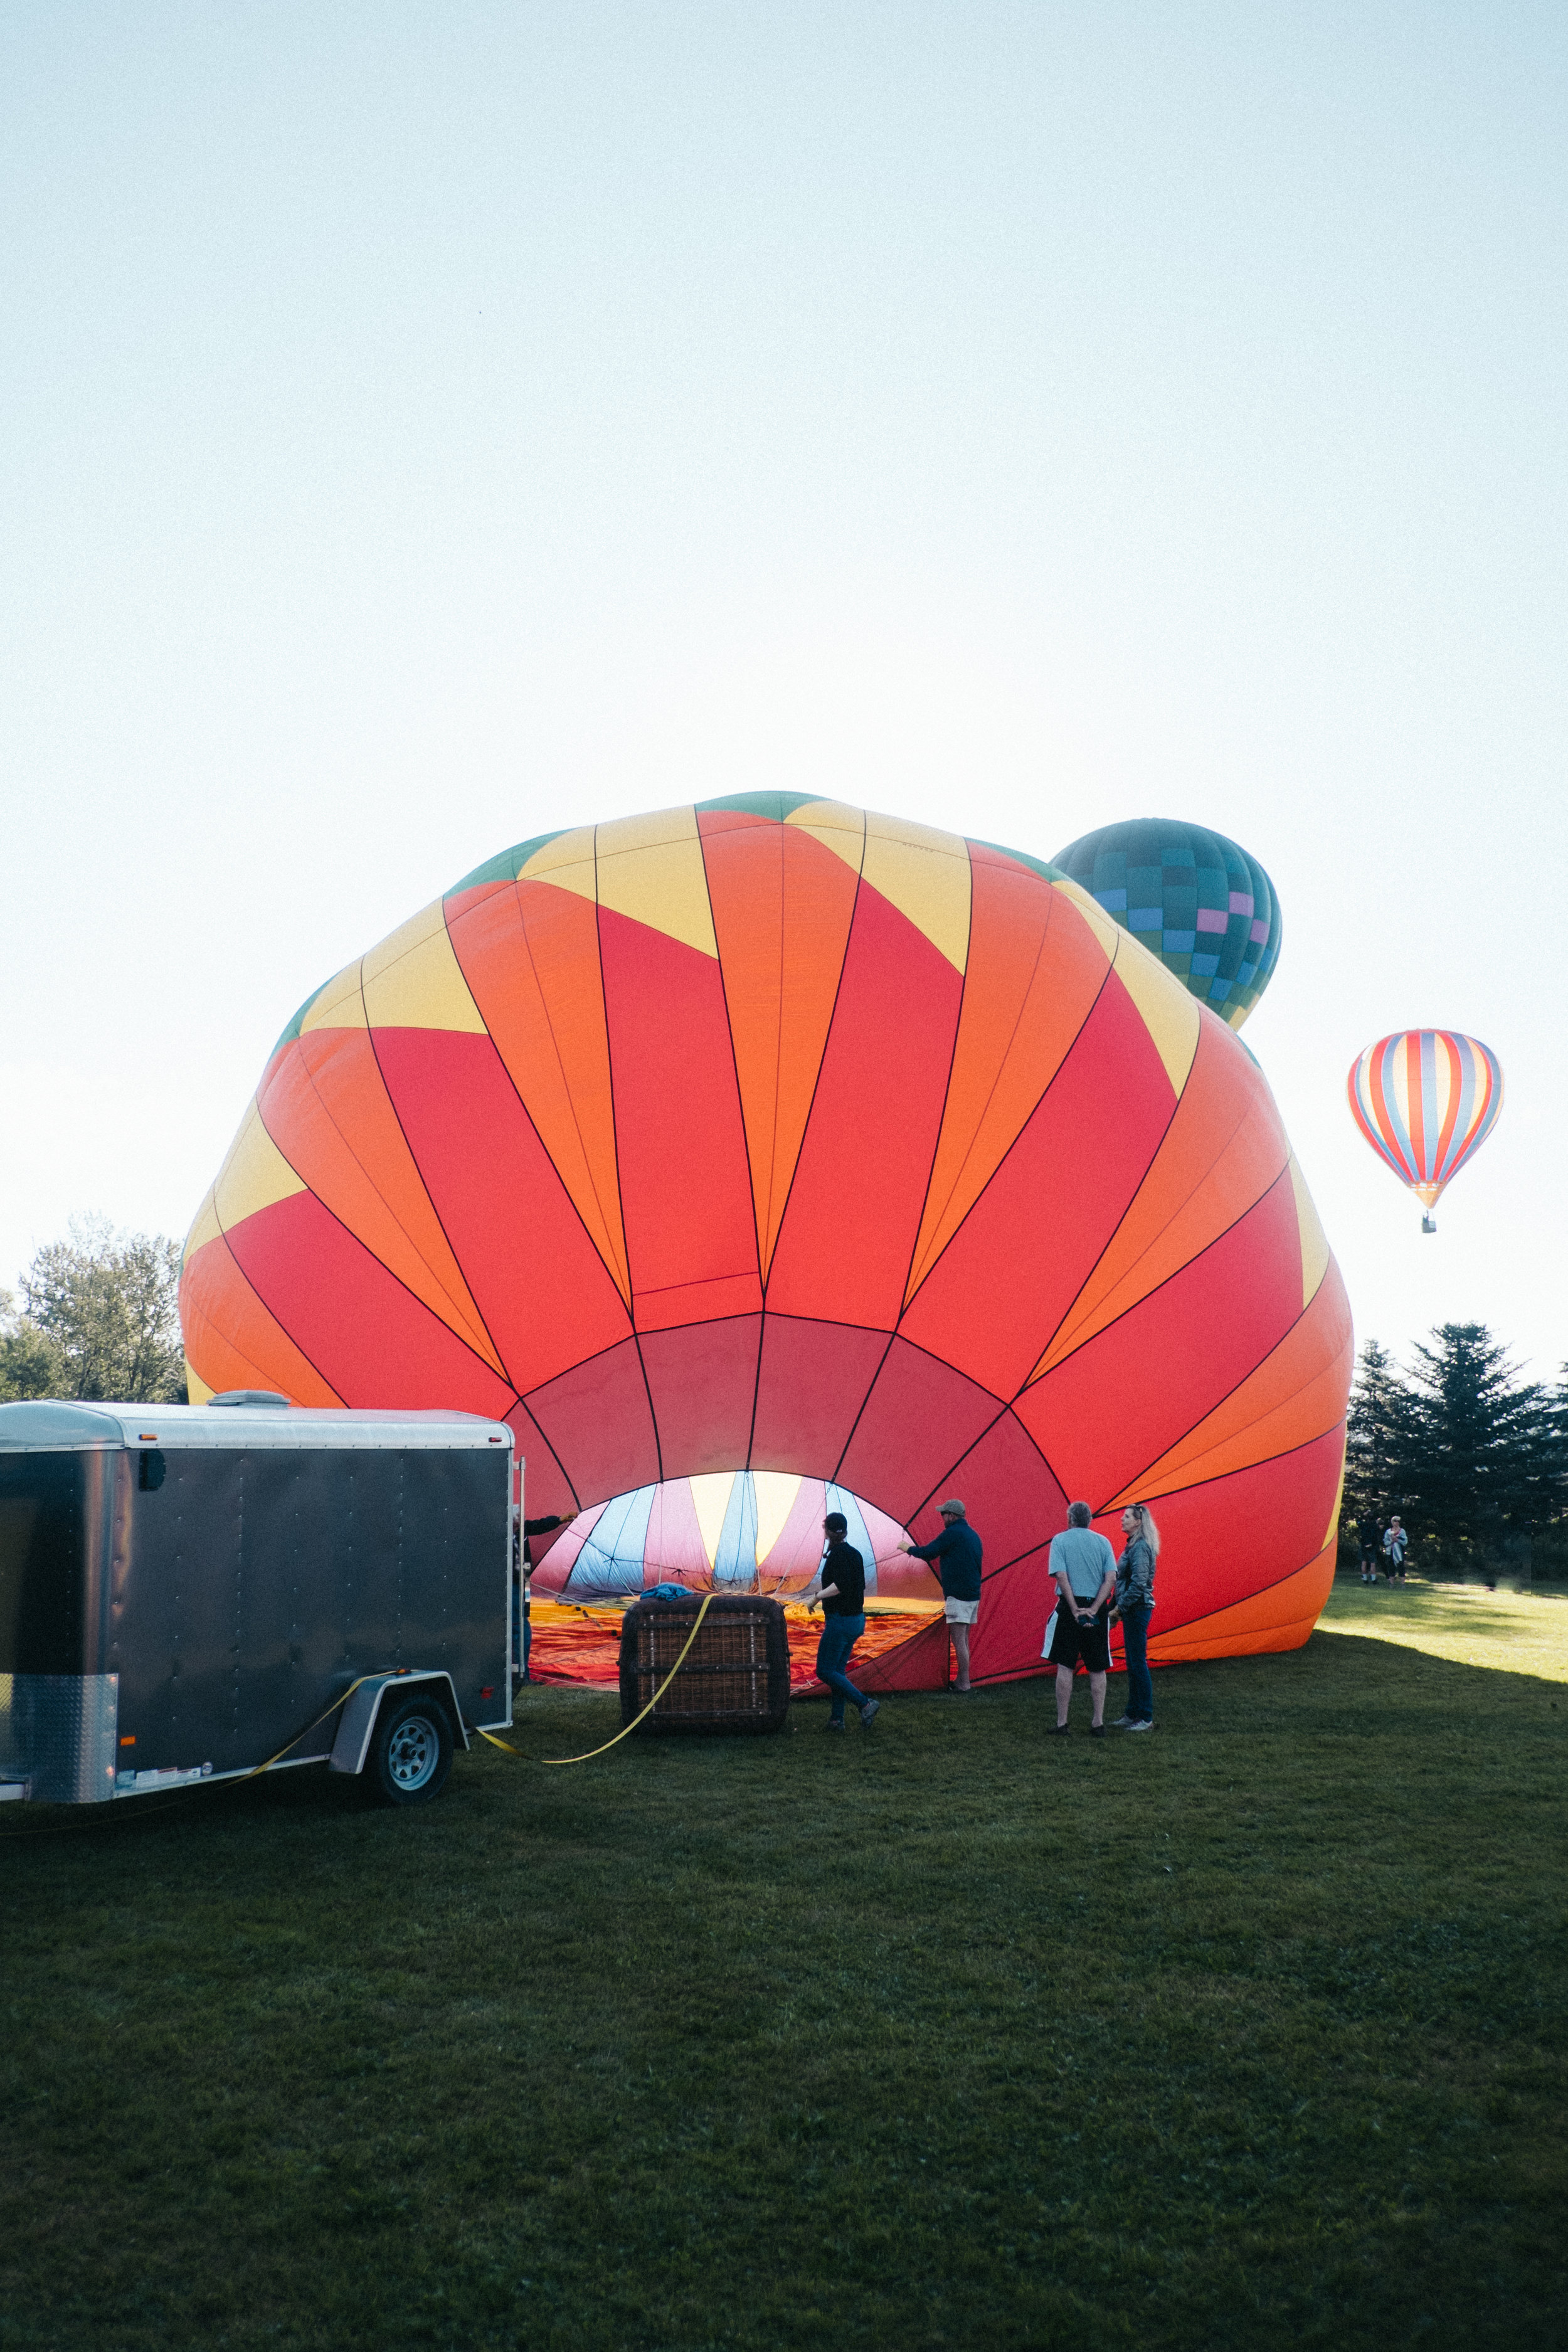 Stowe_Hot_Air_Balloon_Festival11.jpg